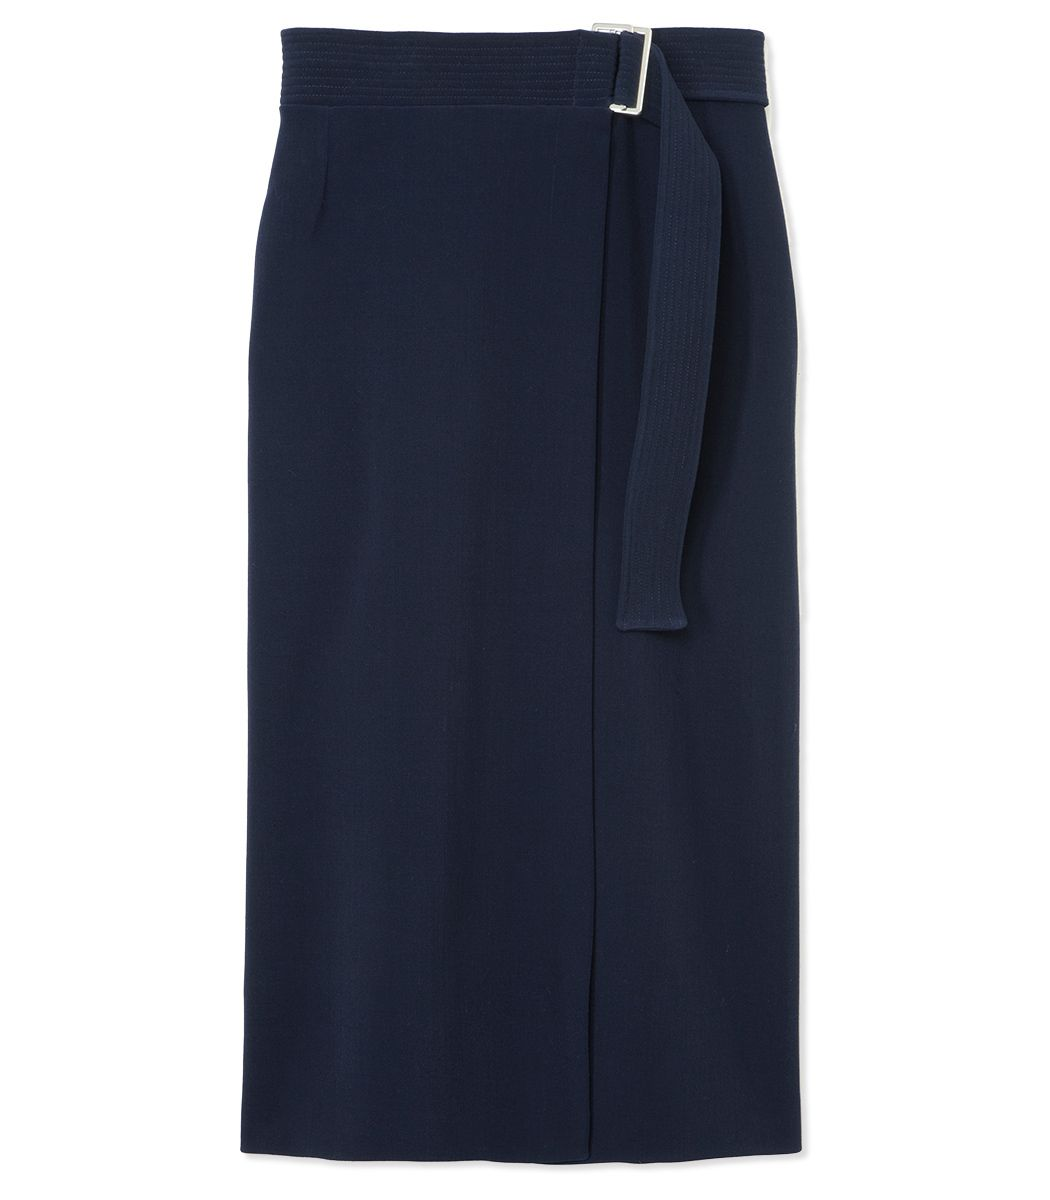 J.W. Anderson Belted Wrap Skirt